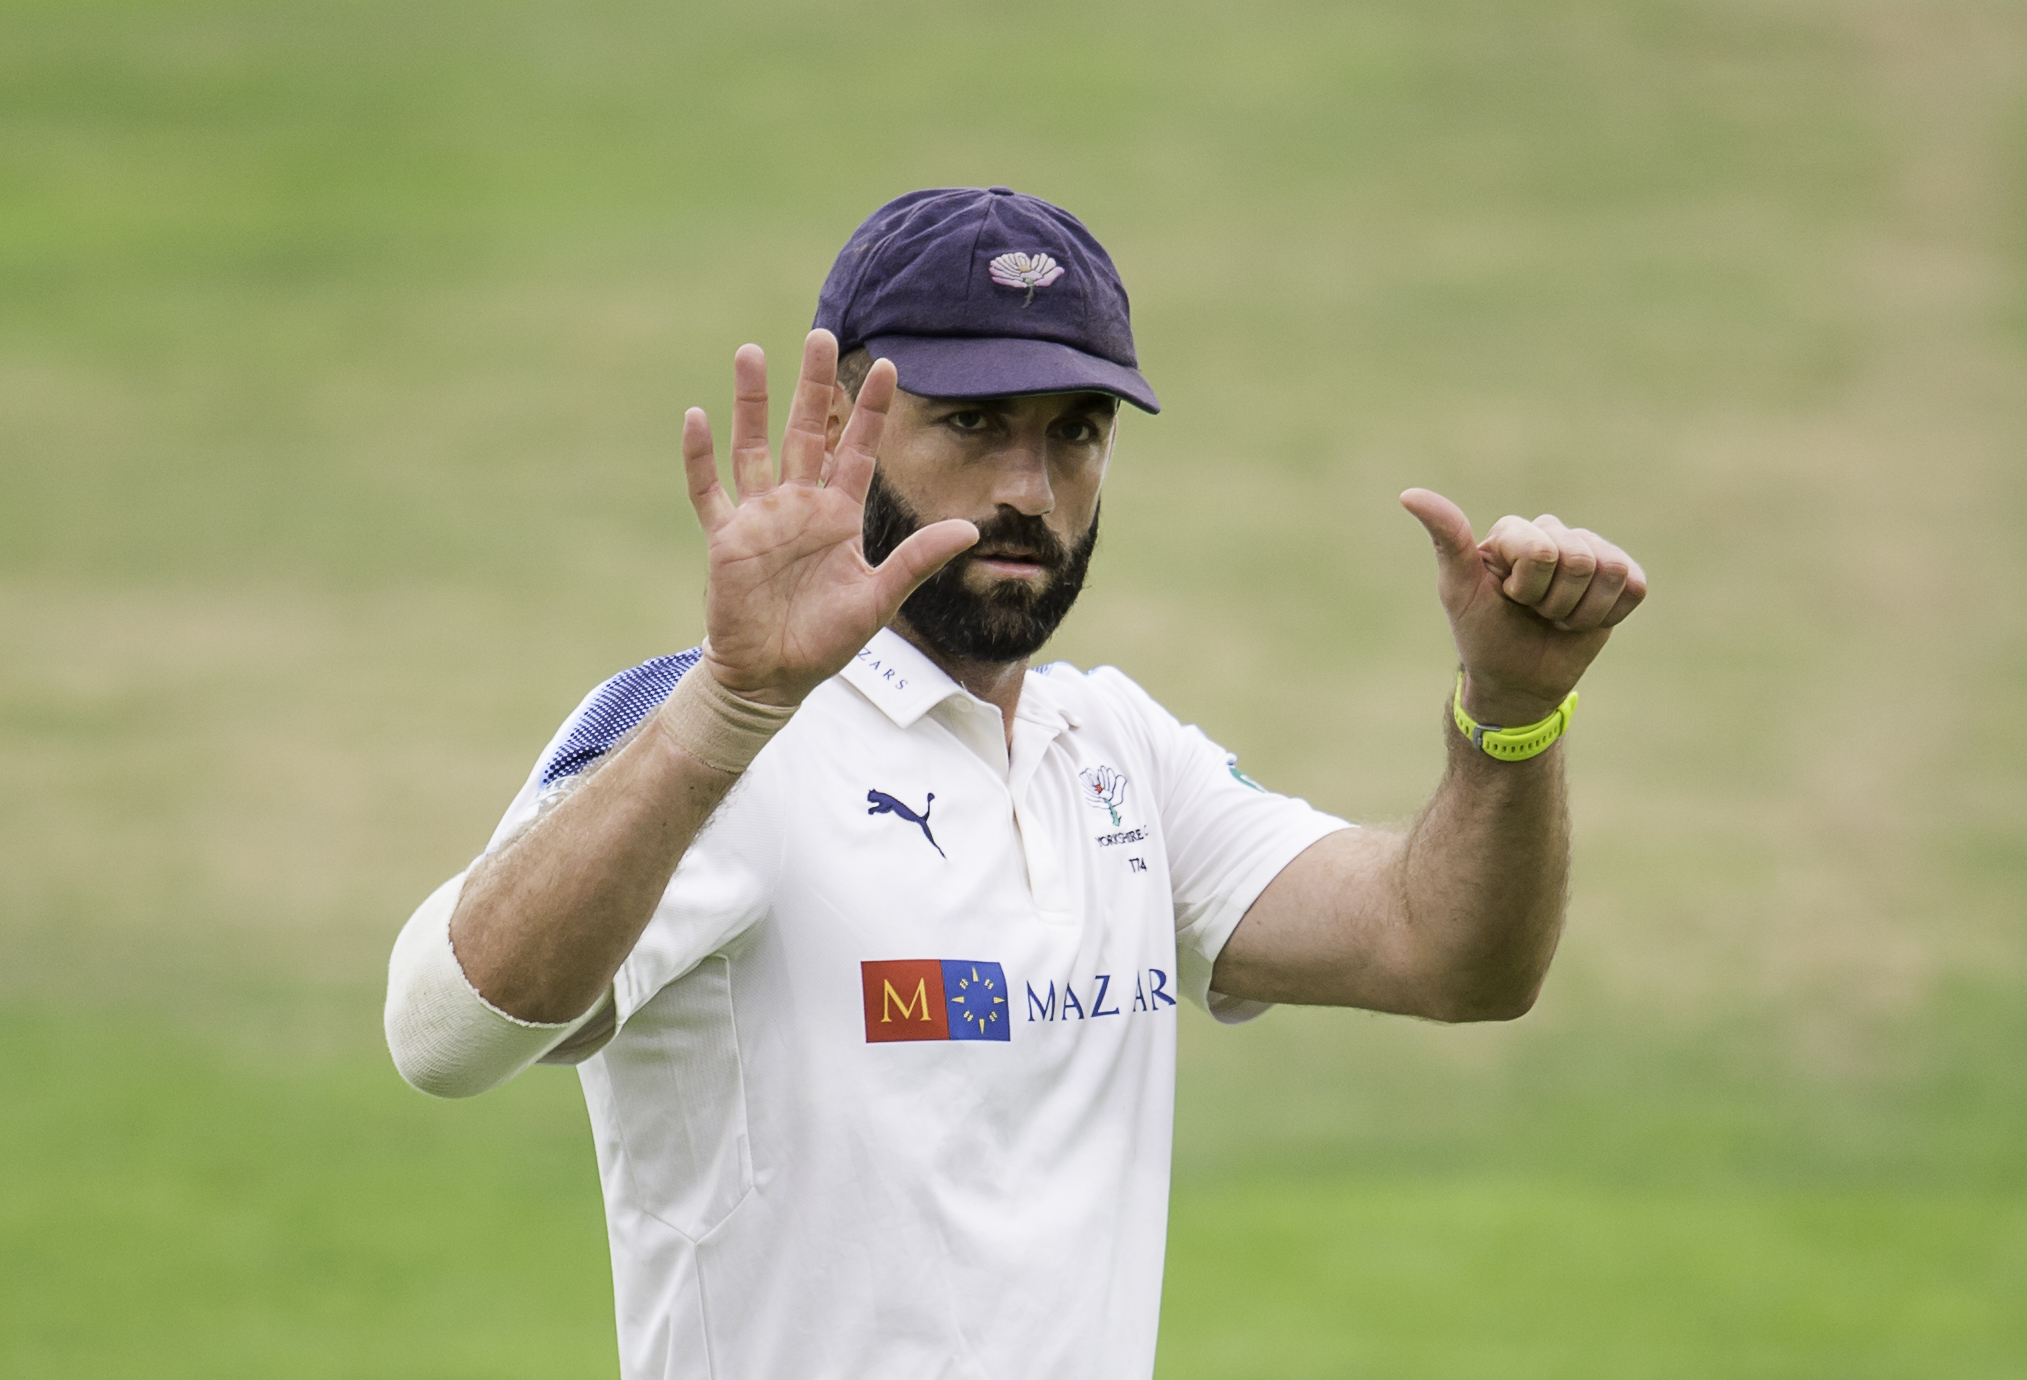 Yorkshire's Liam Plunkett is back for Yorkshire following a spell in the Indian Premier League. Picture by Allan McKenzie/SWpix.com Yorkshire's Liam Plunkett..